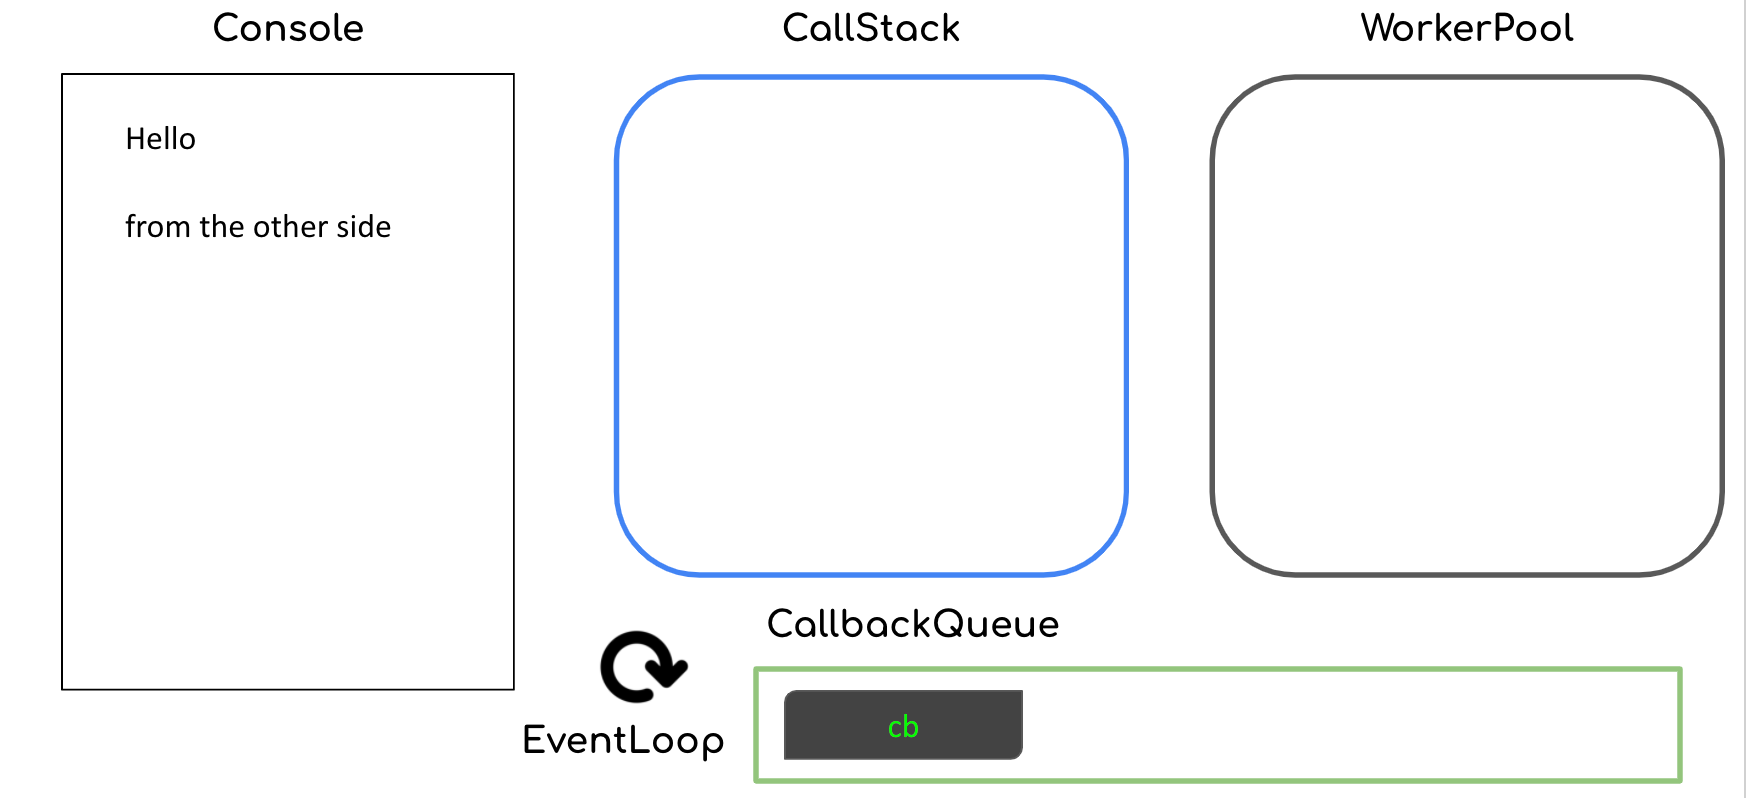 Network call completes and callback queued